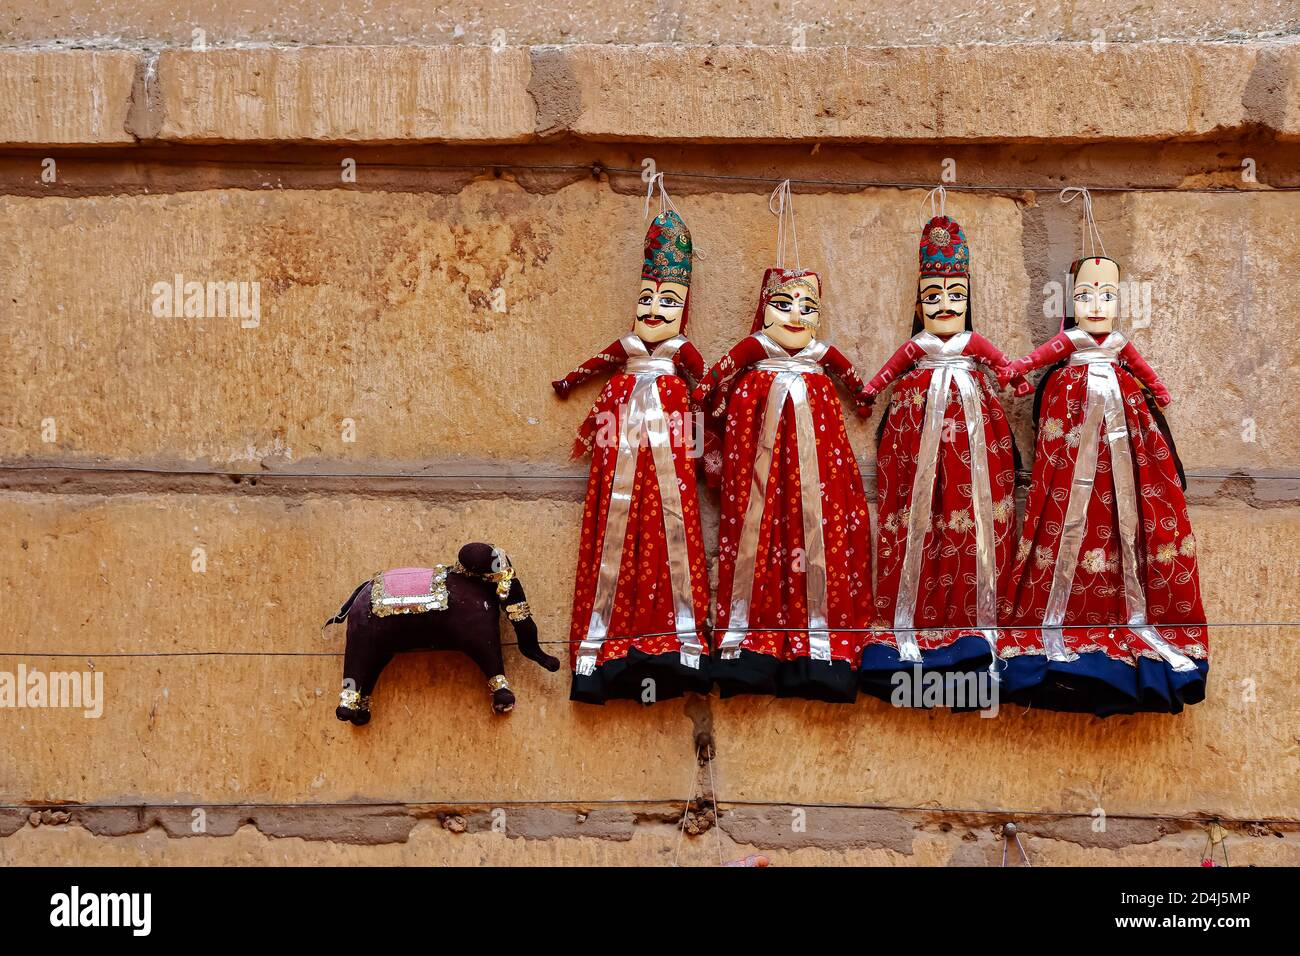 Colorful human shaped Puppets wearing colorful clothes hanging against the wall in Rajasthan India on 21 February 2018 Stock Photo